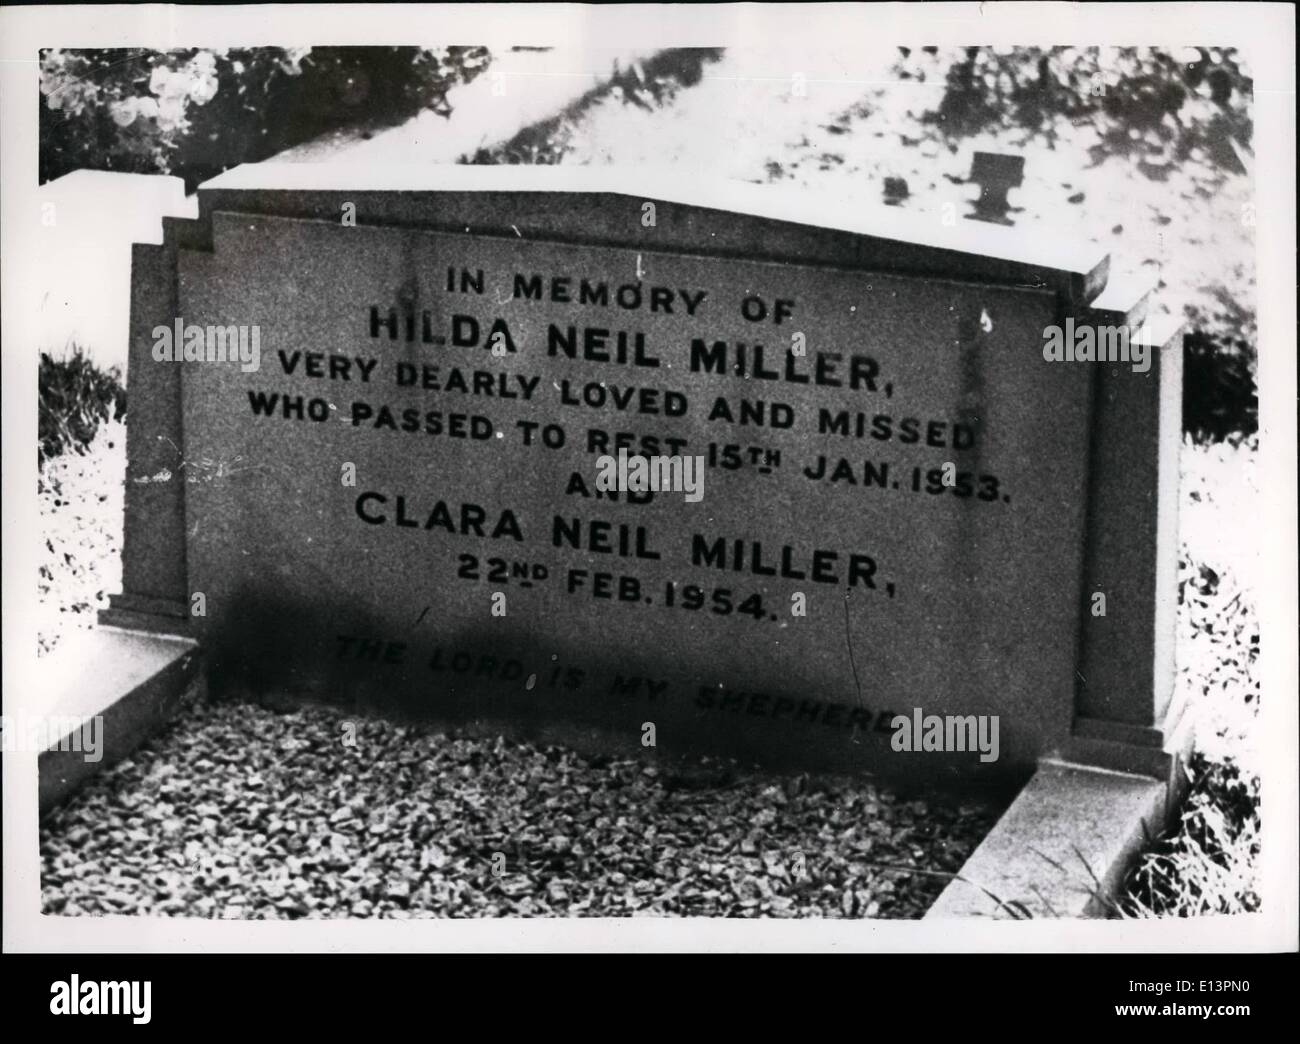 Mar. 22, 2012 - In memory of Hilda Neil Miller, very dearly loved and missed who passed to rest 15th Jan. 1953. Stock Photo